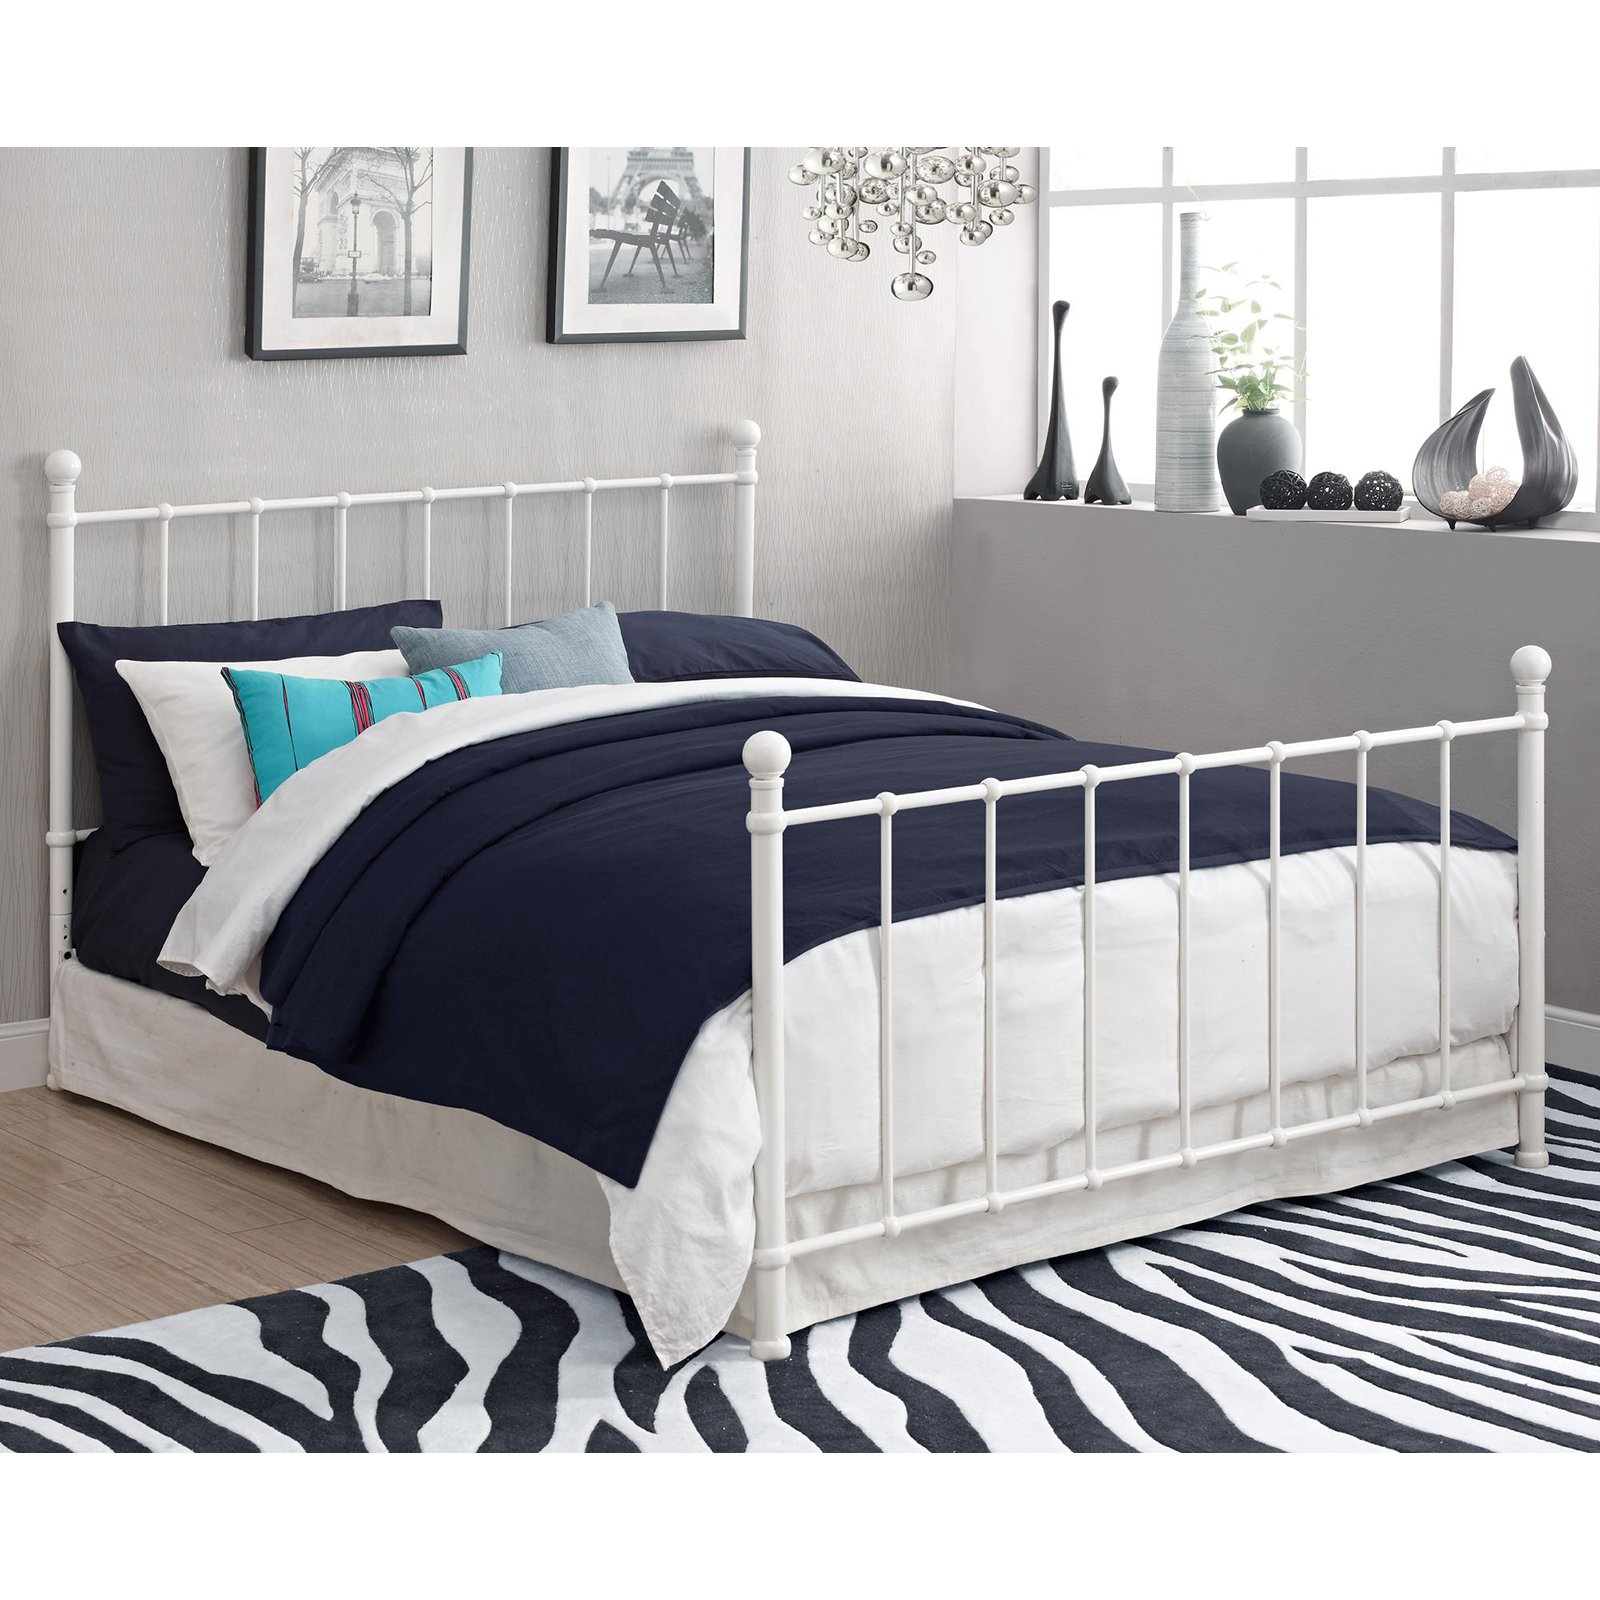 BrickMill Metal Bed Frame, Full Size, Multiple Colors